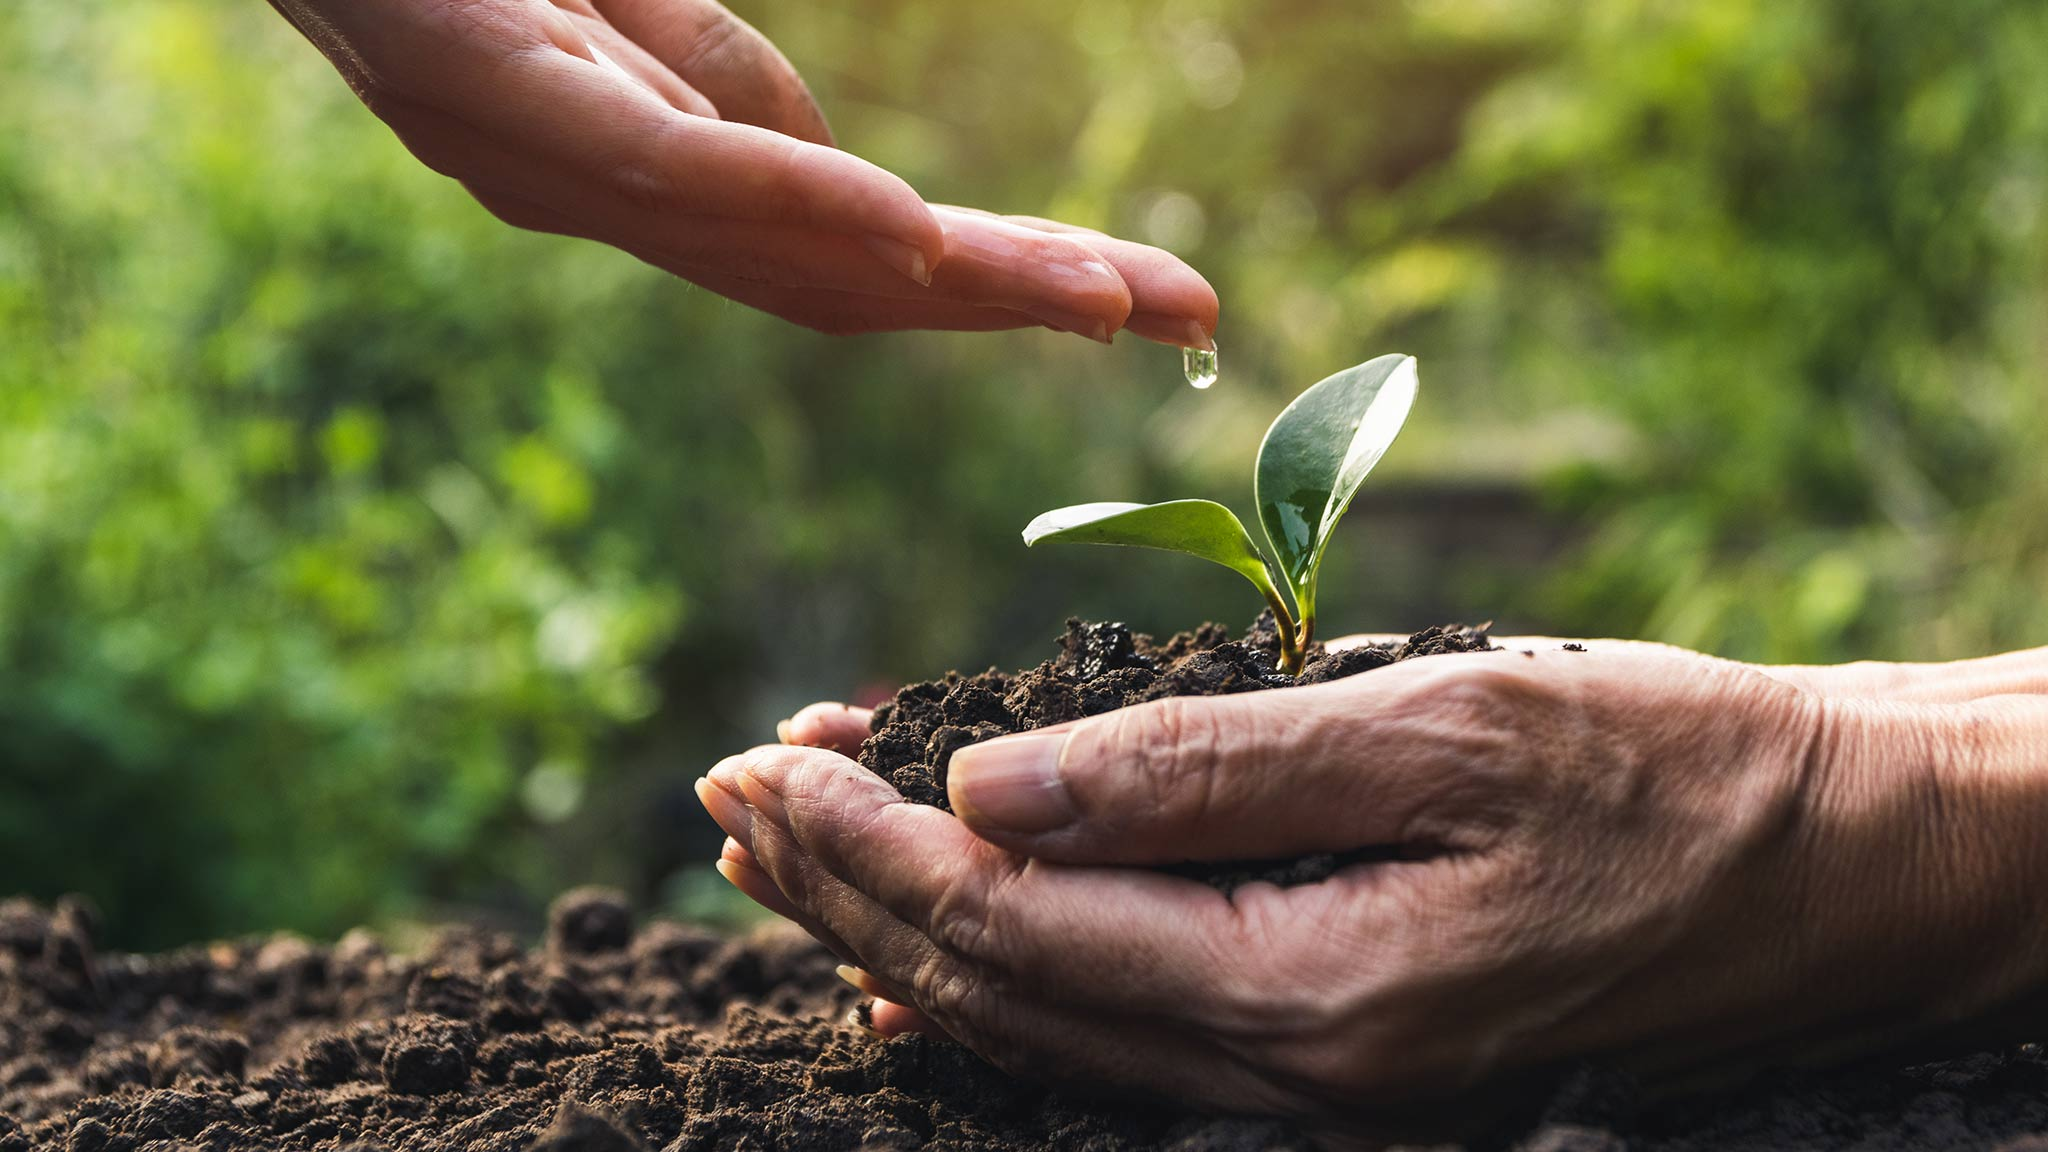 Photo Of A Young Hand Dripping Water Onto A Baby Plant In Dirt Held By Elderly Hand, Young Helping Old Concept